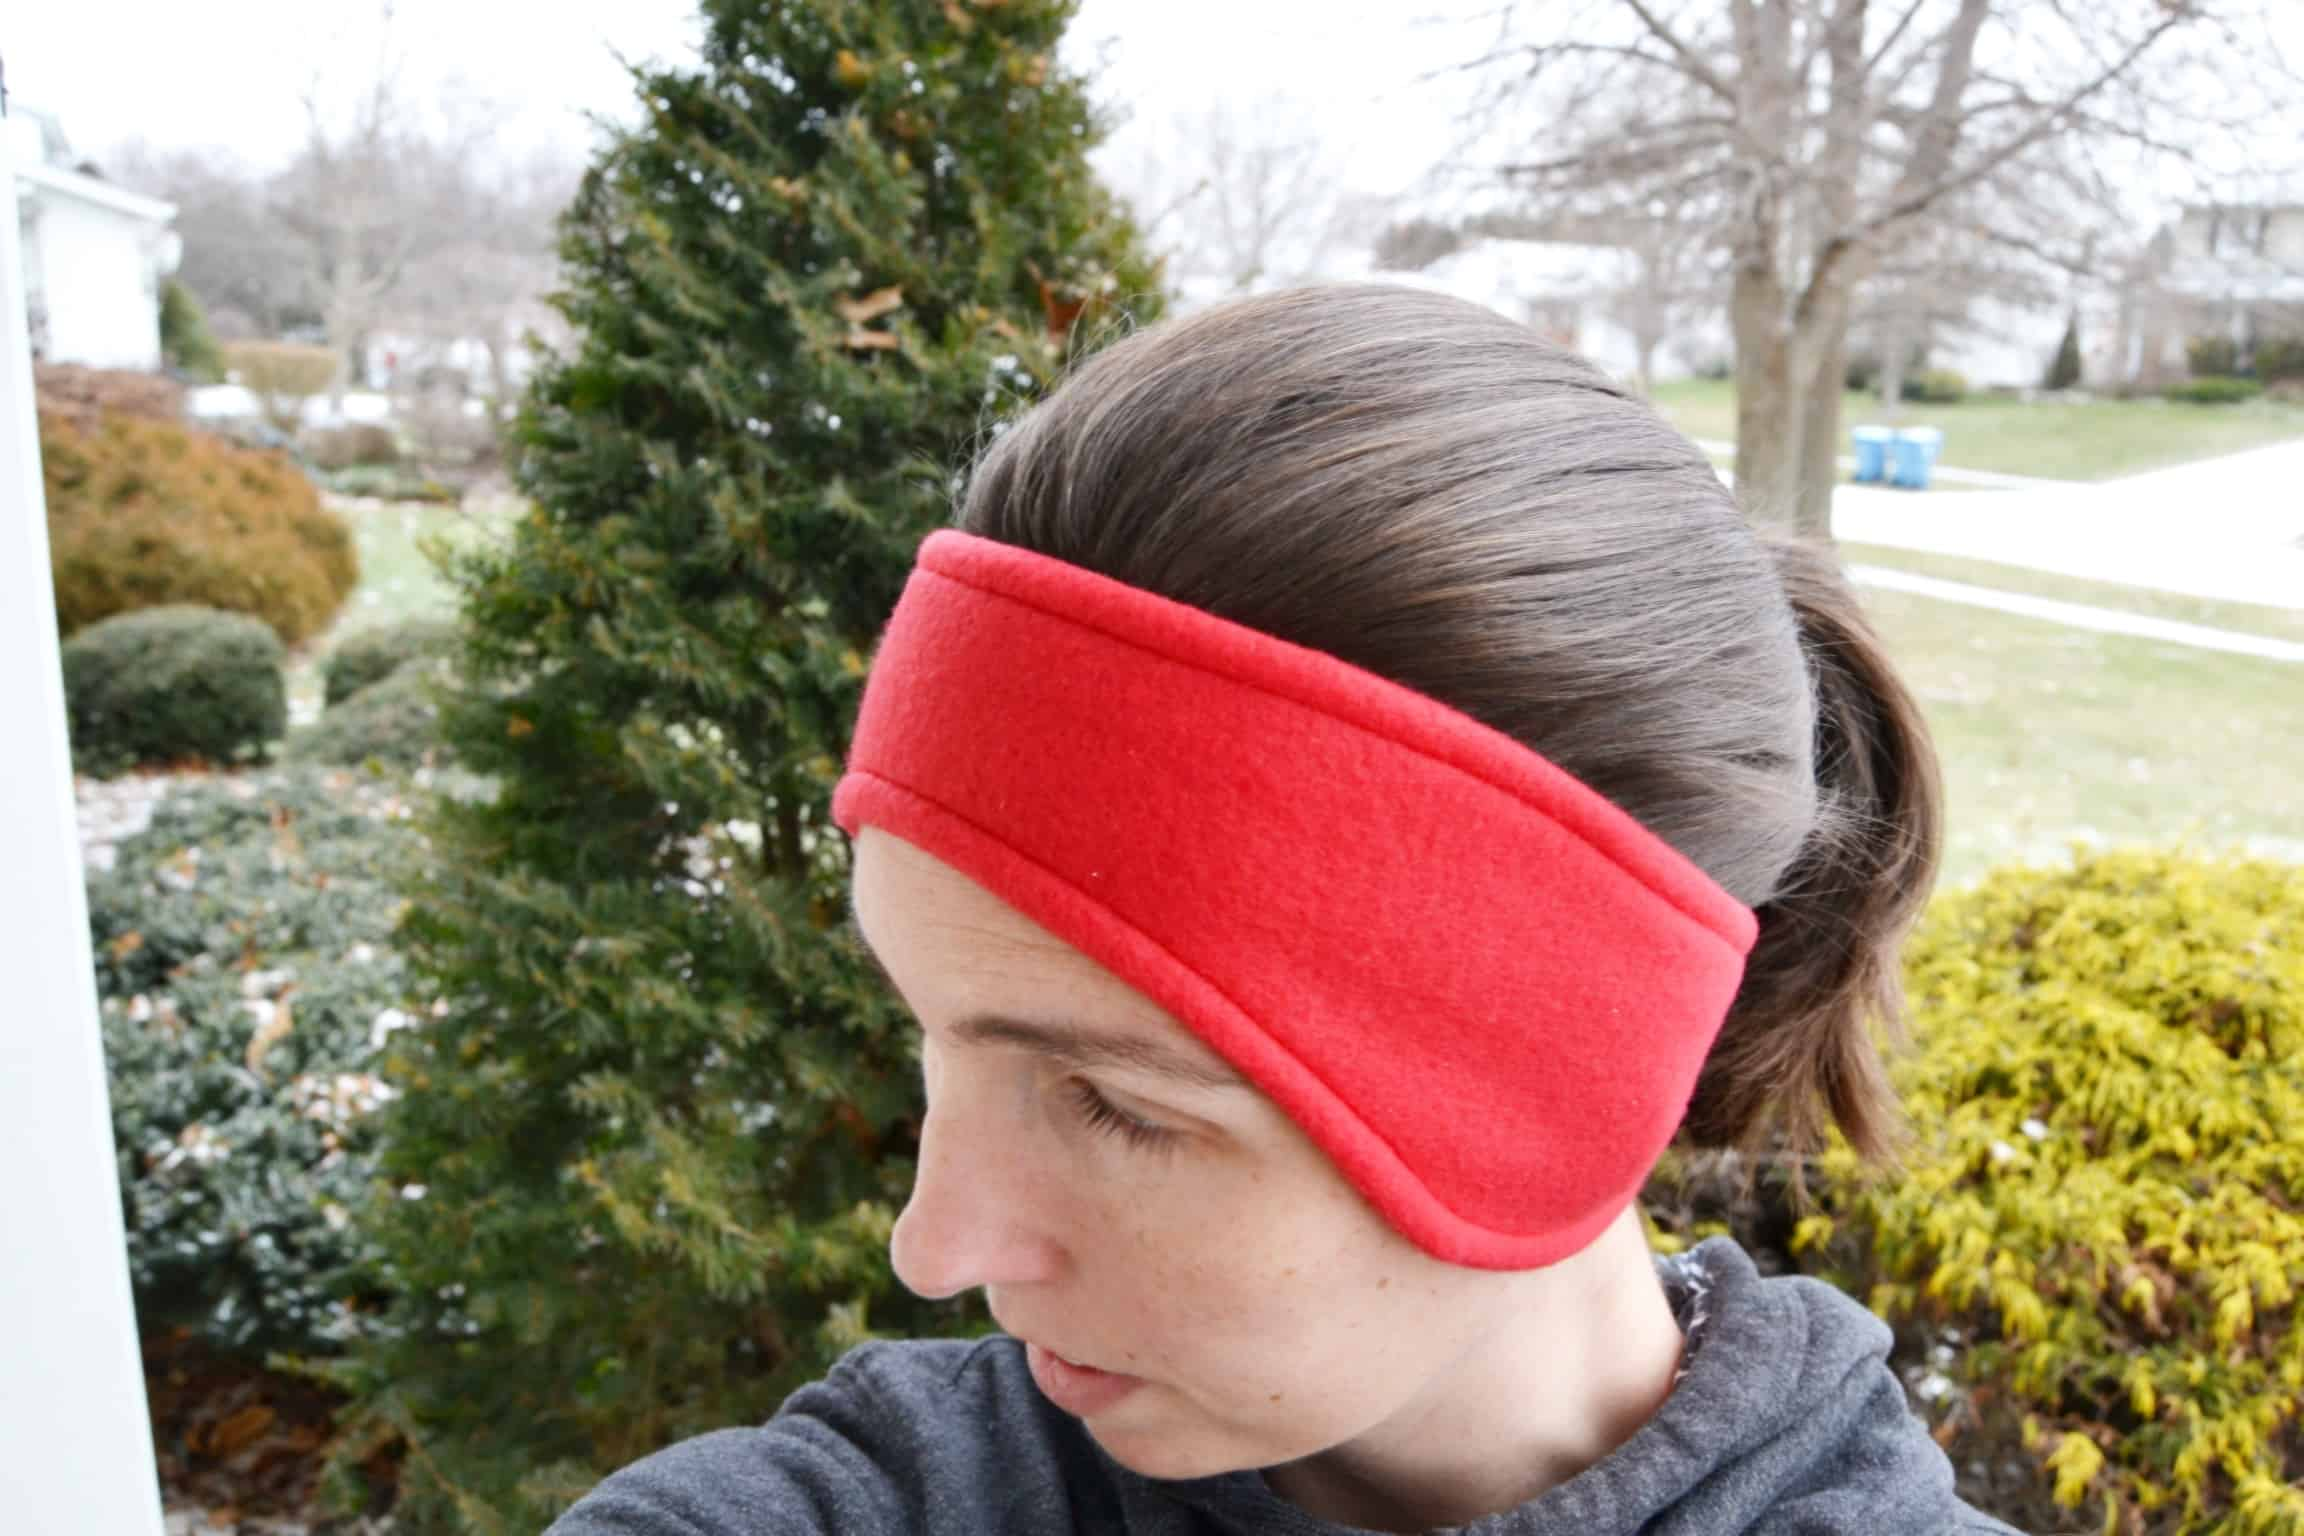 fleece-earwarmer-headband-3-gawk